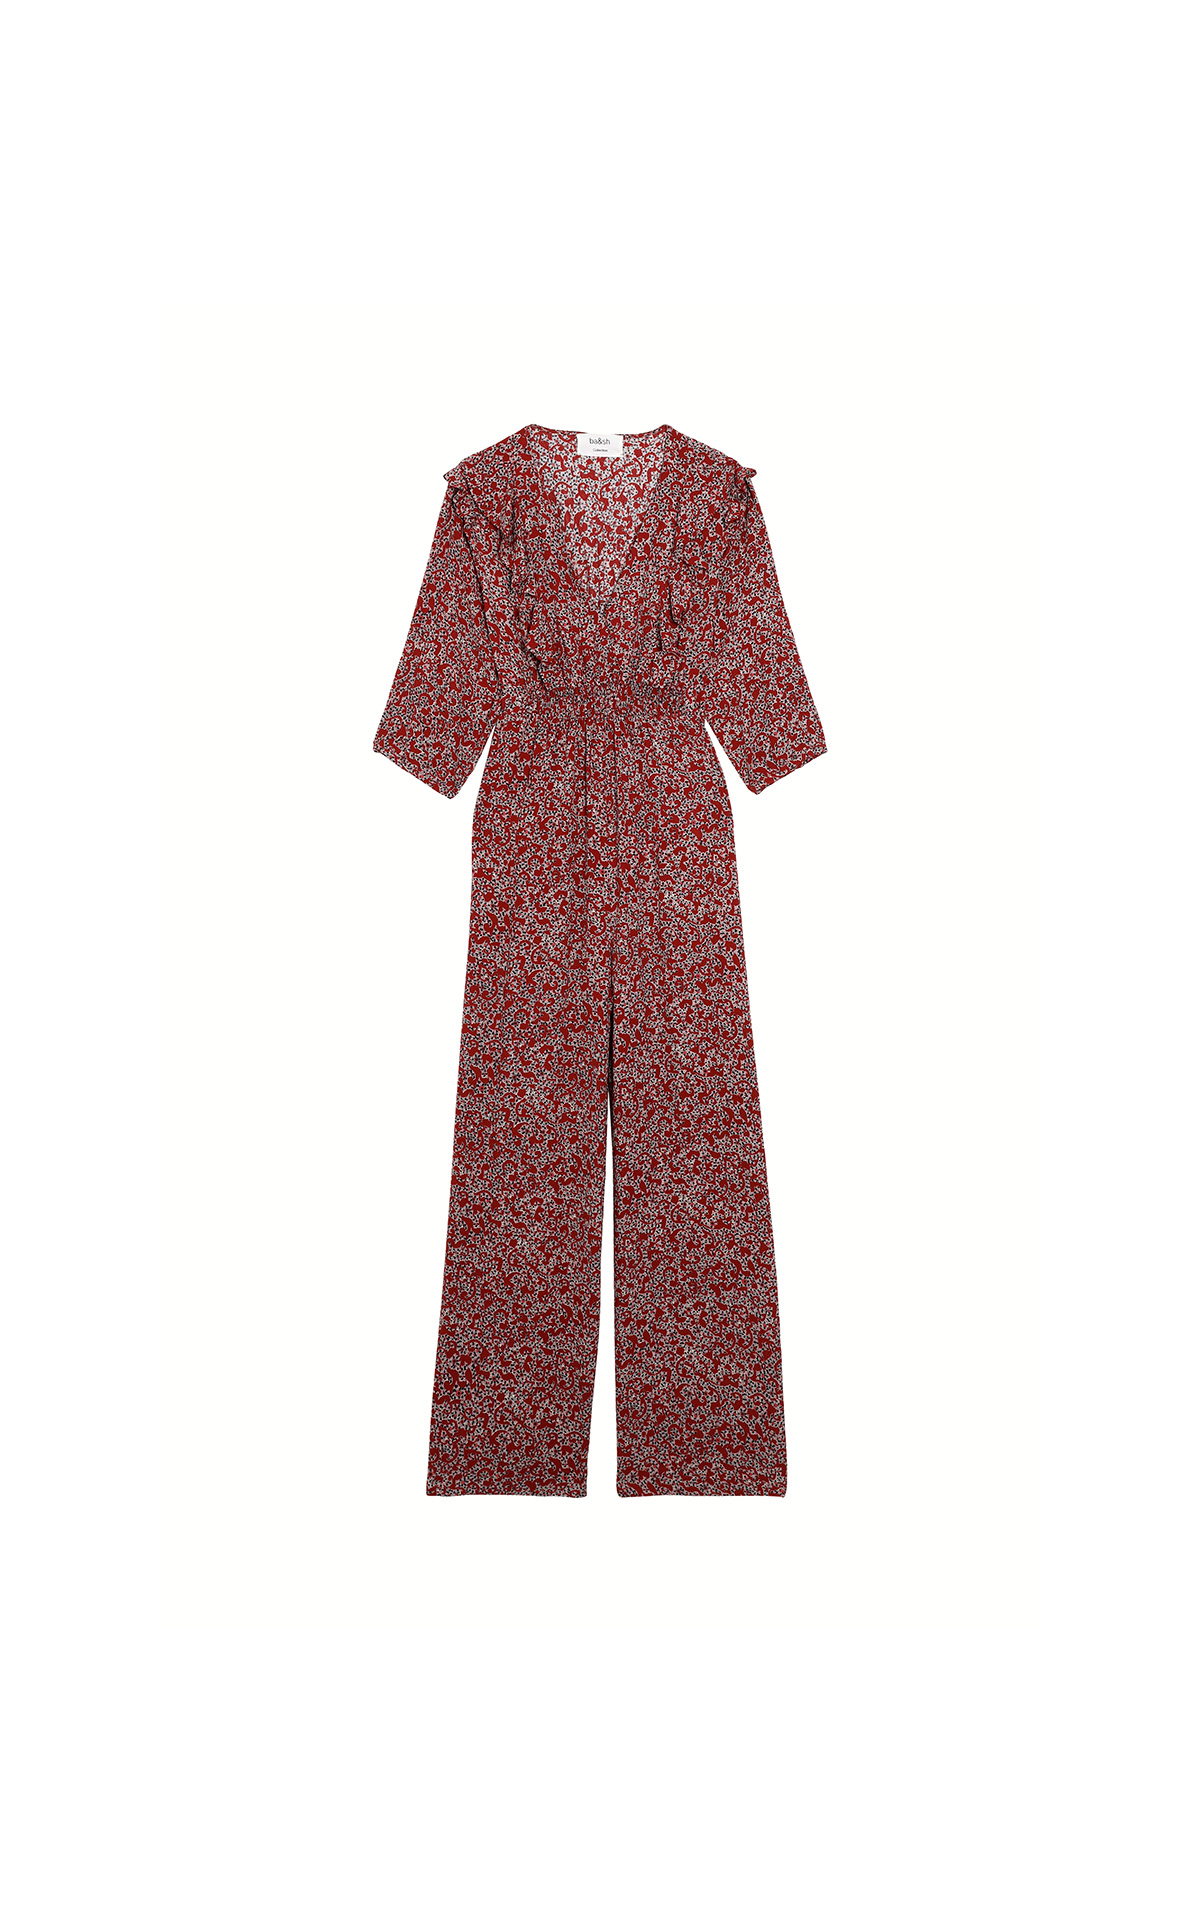 La Vallée Village Ba&sh Cloy playsuit